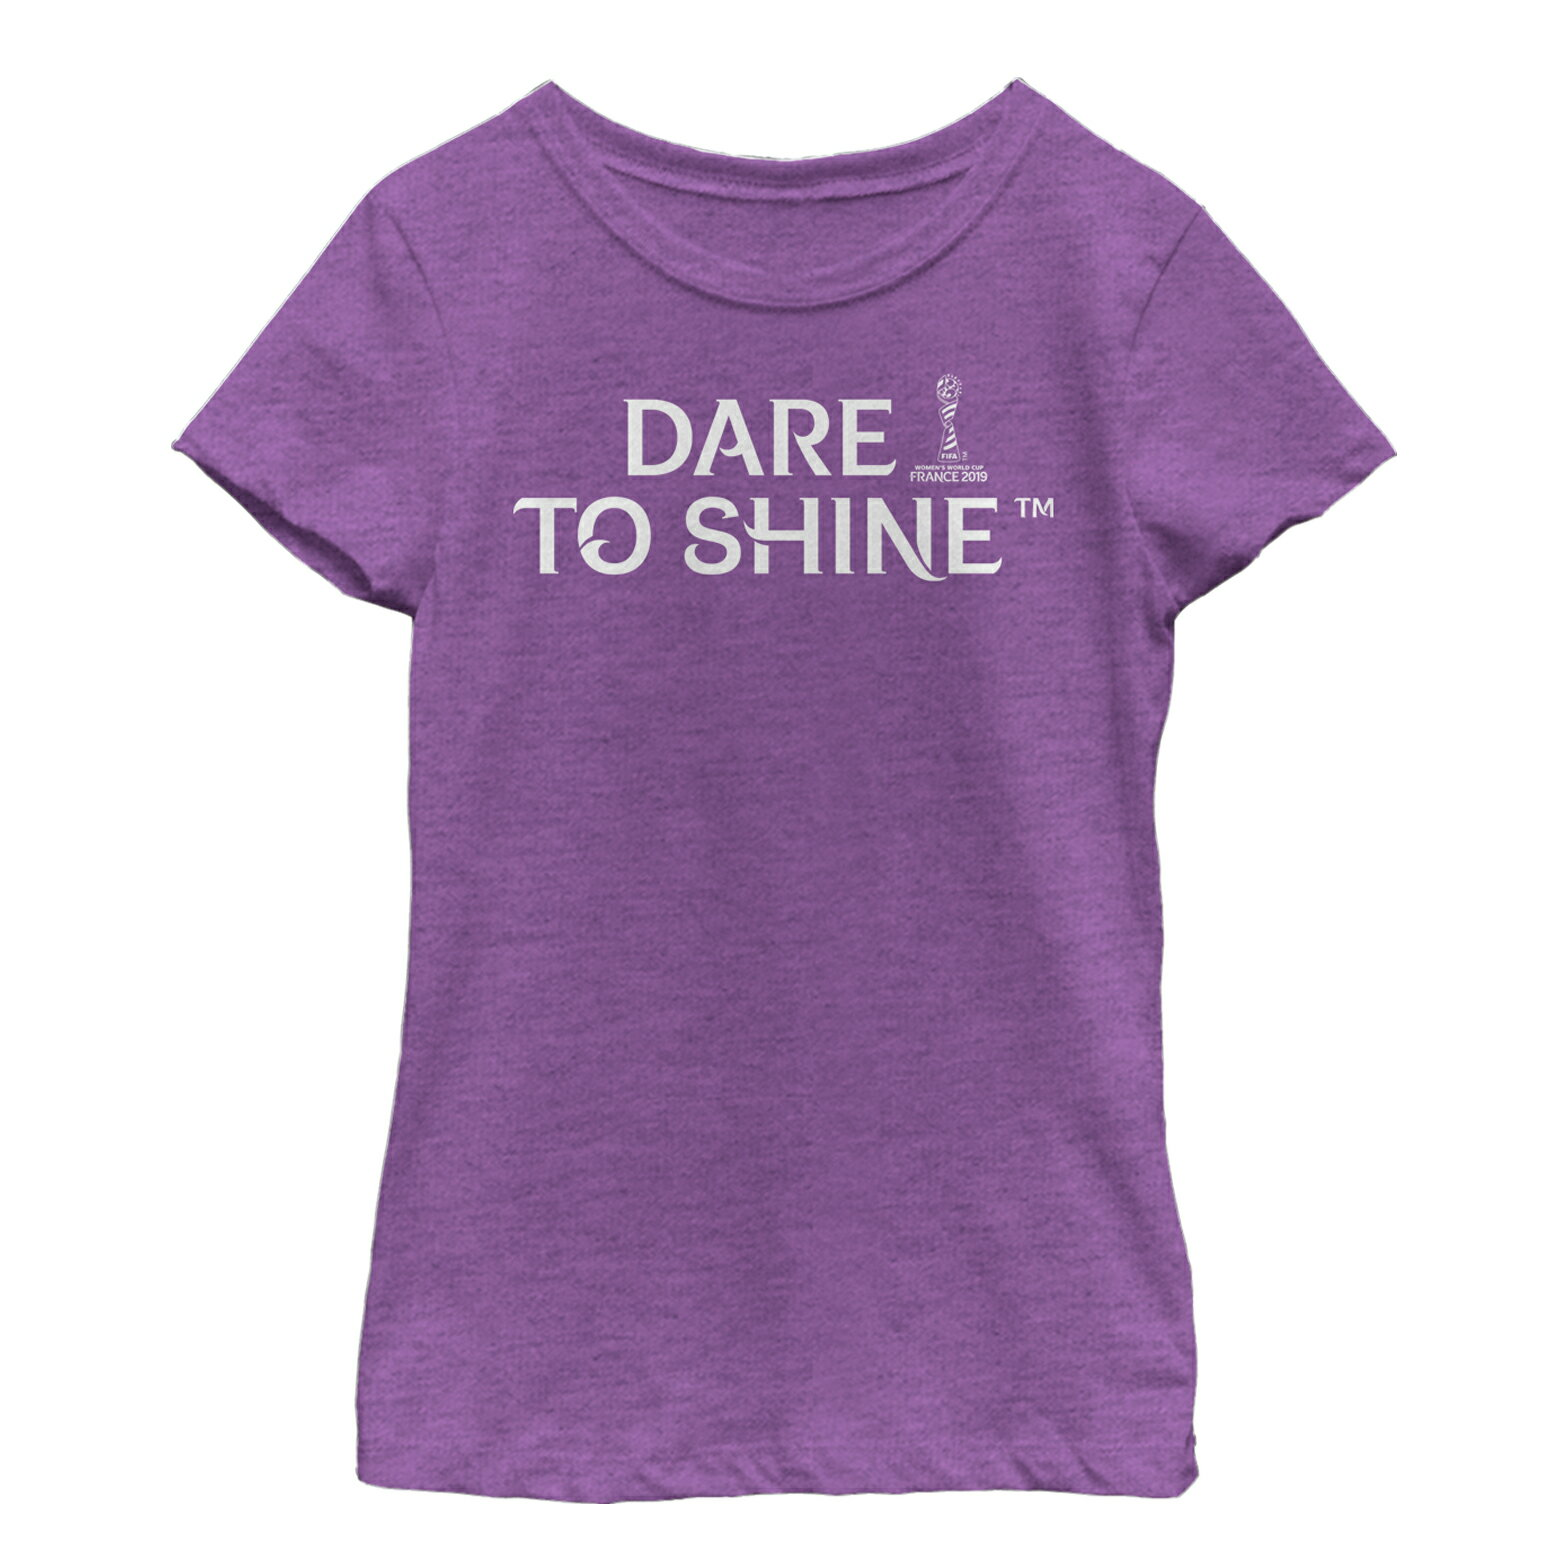 2d1fe2d94 FIFA Women's World Cup France 2019™ Dare to Shine Slogan Girls Graphic T  Shirt 0